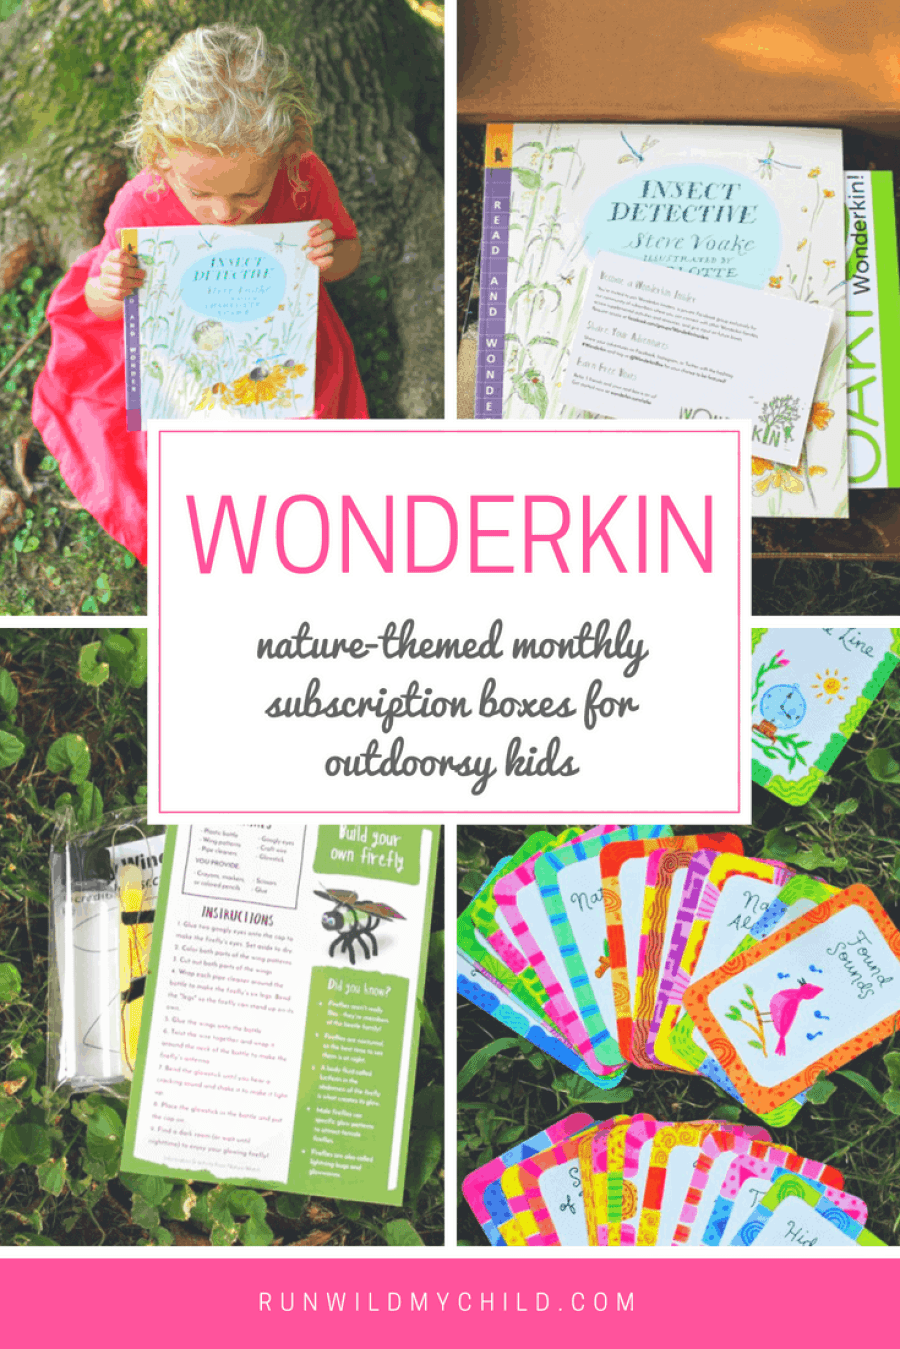 Wonderkin: Nature Themed Subscription Boxes for Outdoorsy Kids